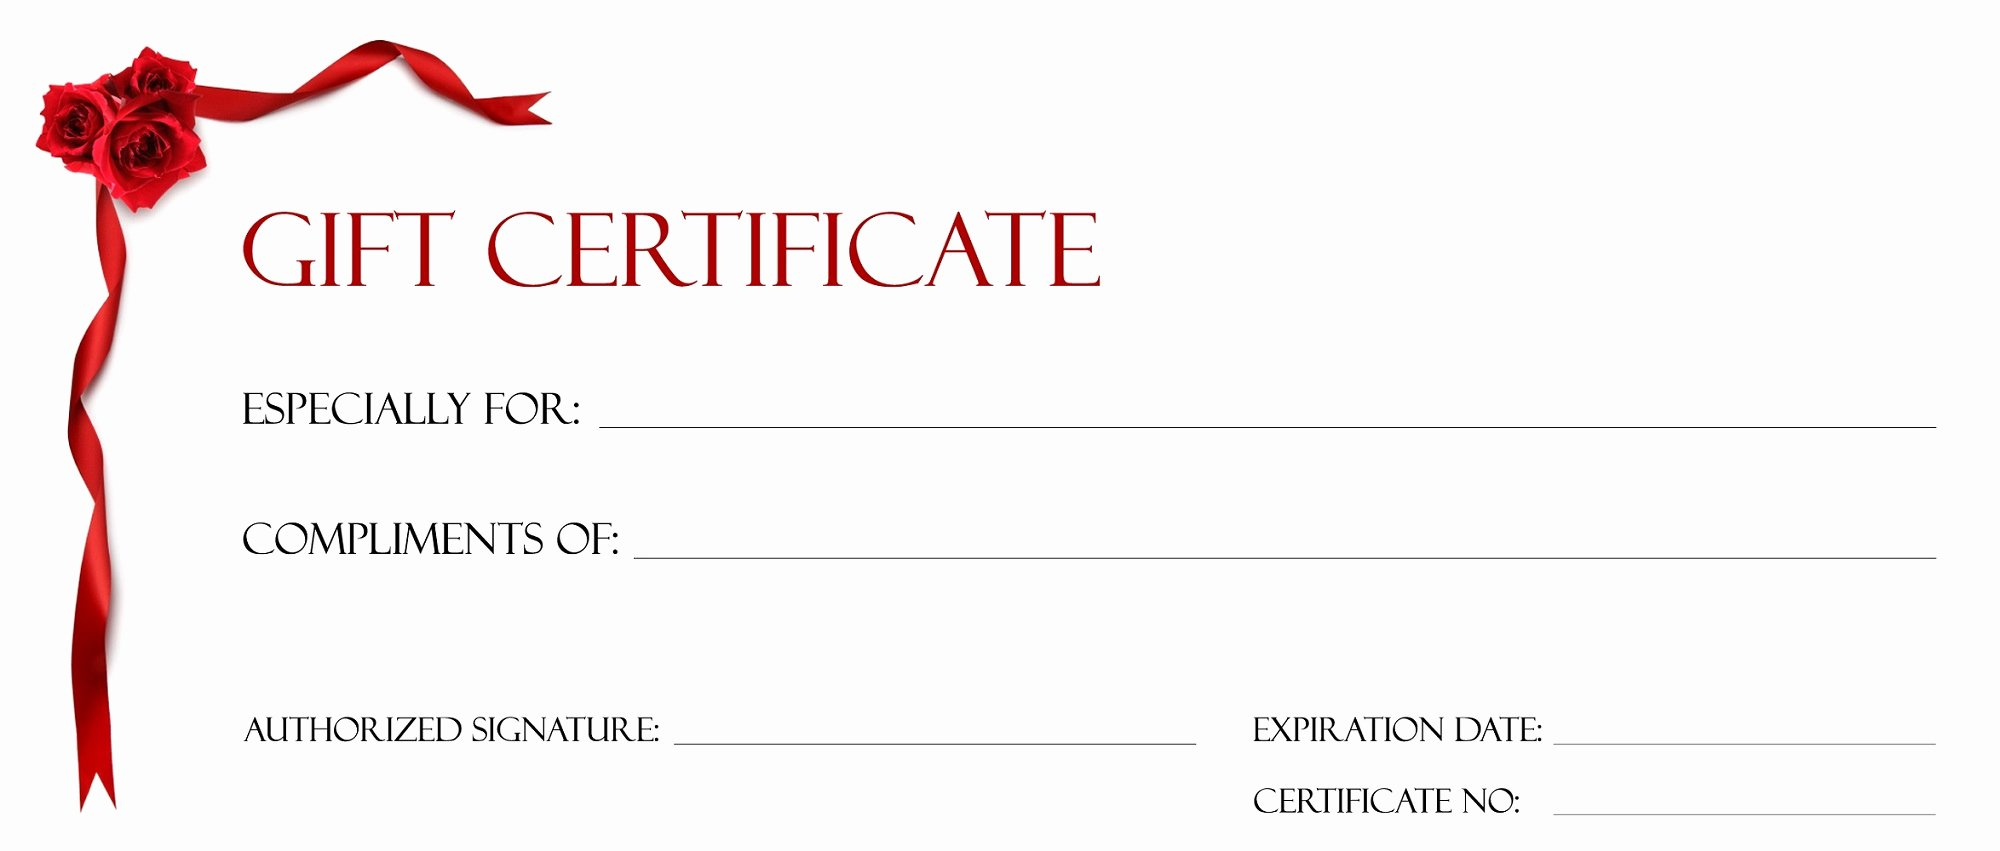 Adams Gift Certificate Template Word New Gift Certificate Template for Kids Blanks